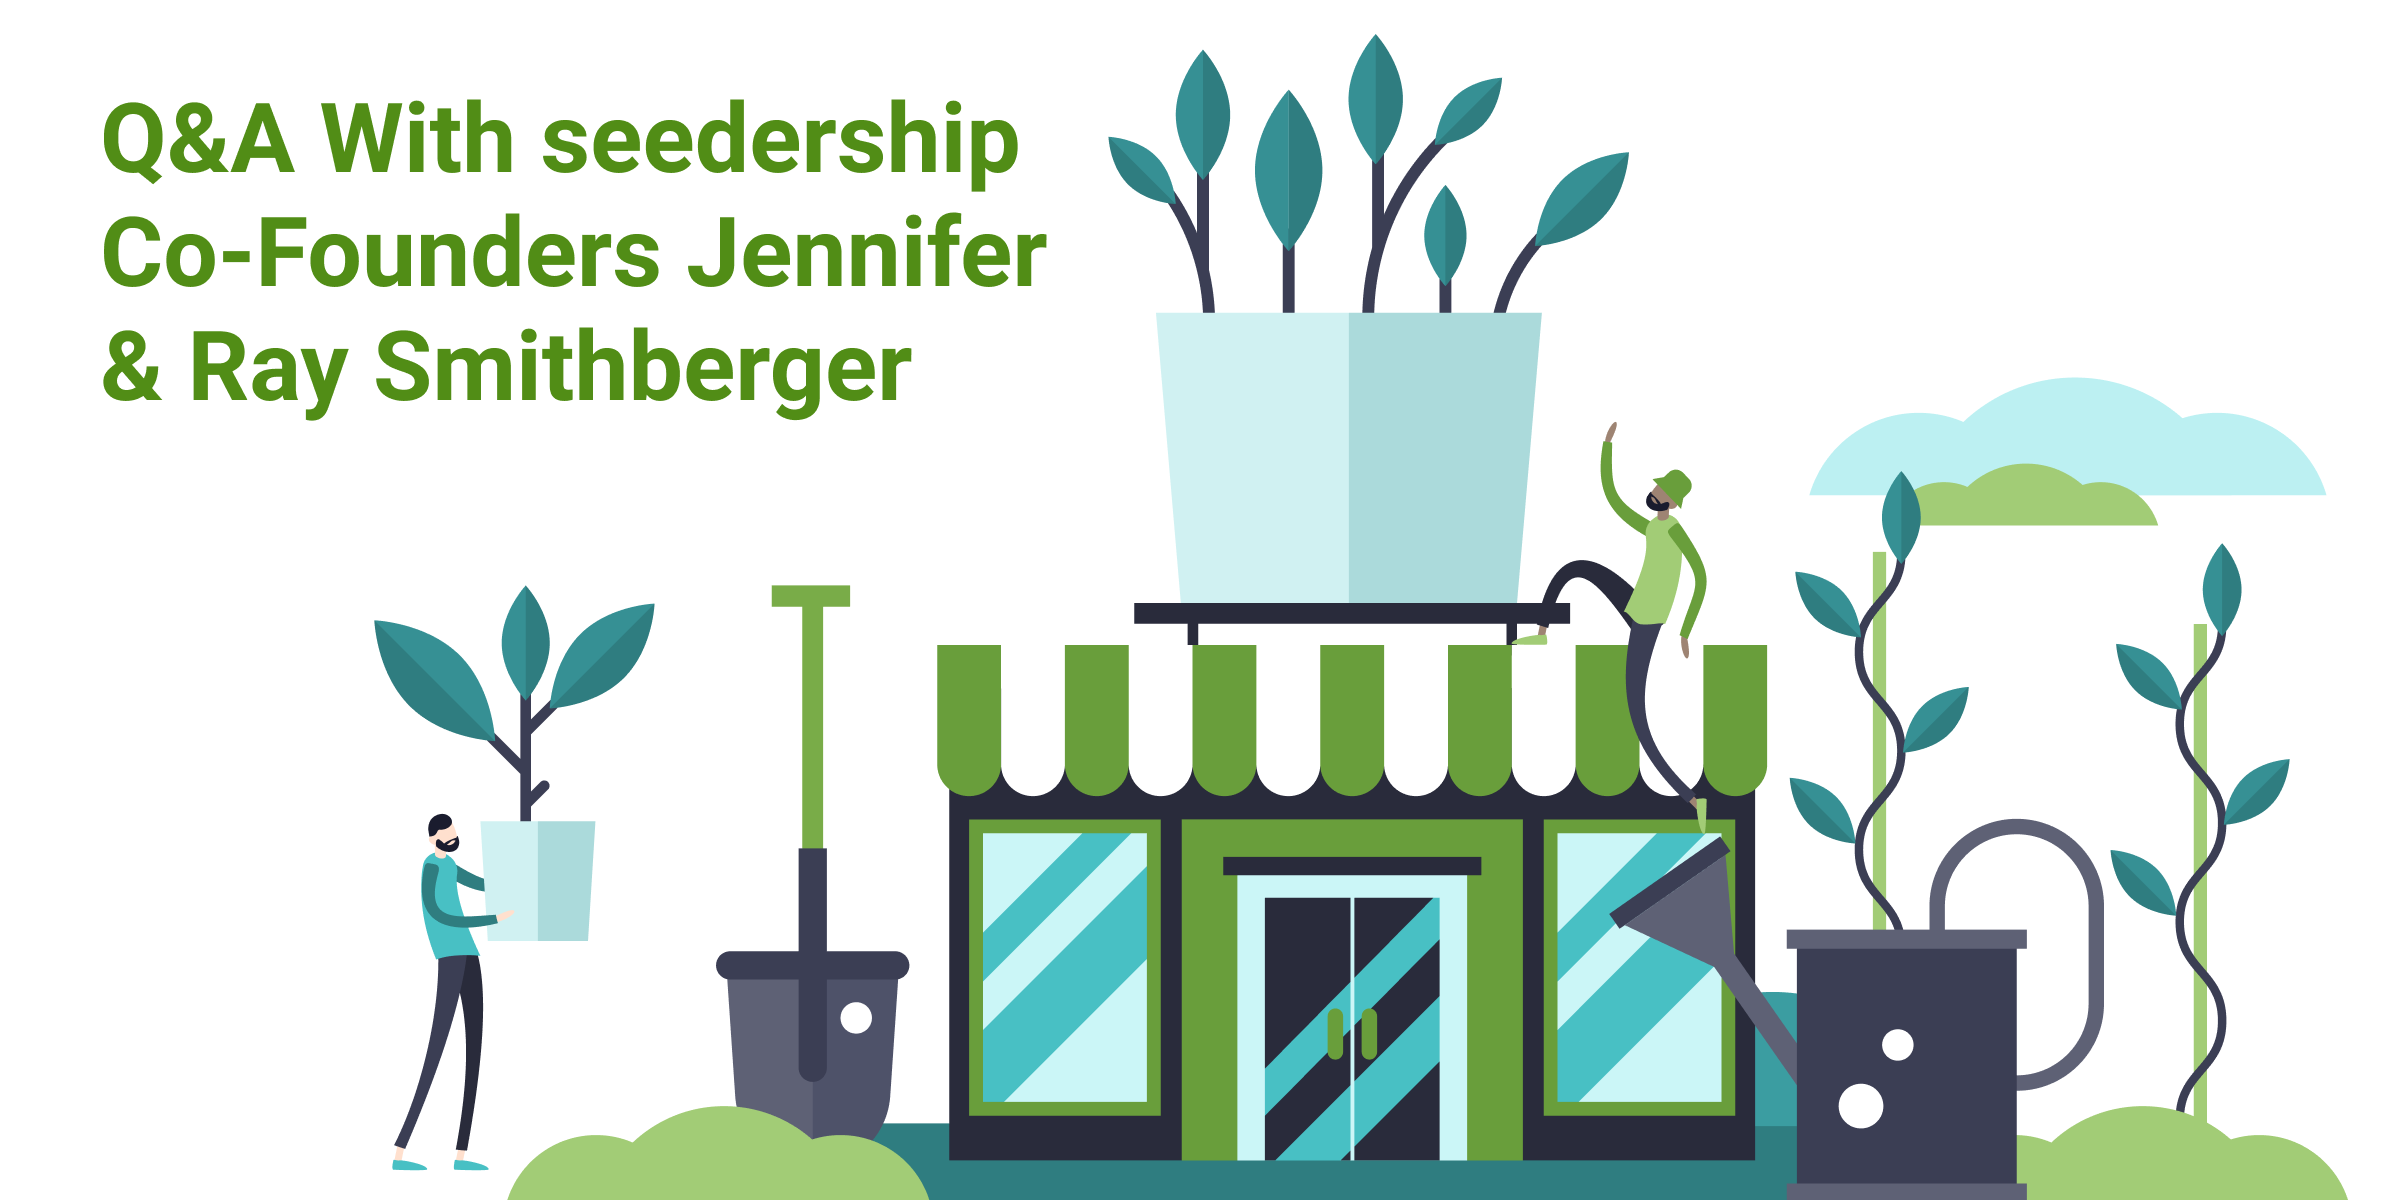 Behind the Platform: Q&A with seedership Co-Founders Jennifer and Ray Smithberger